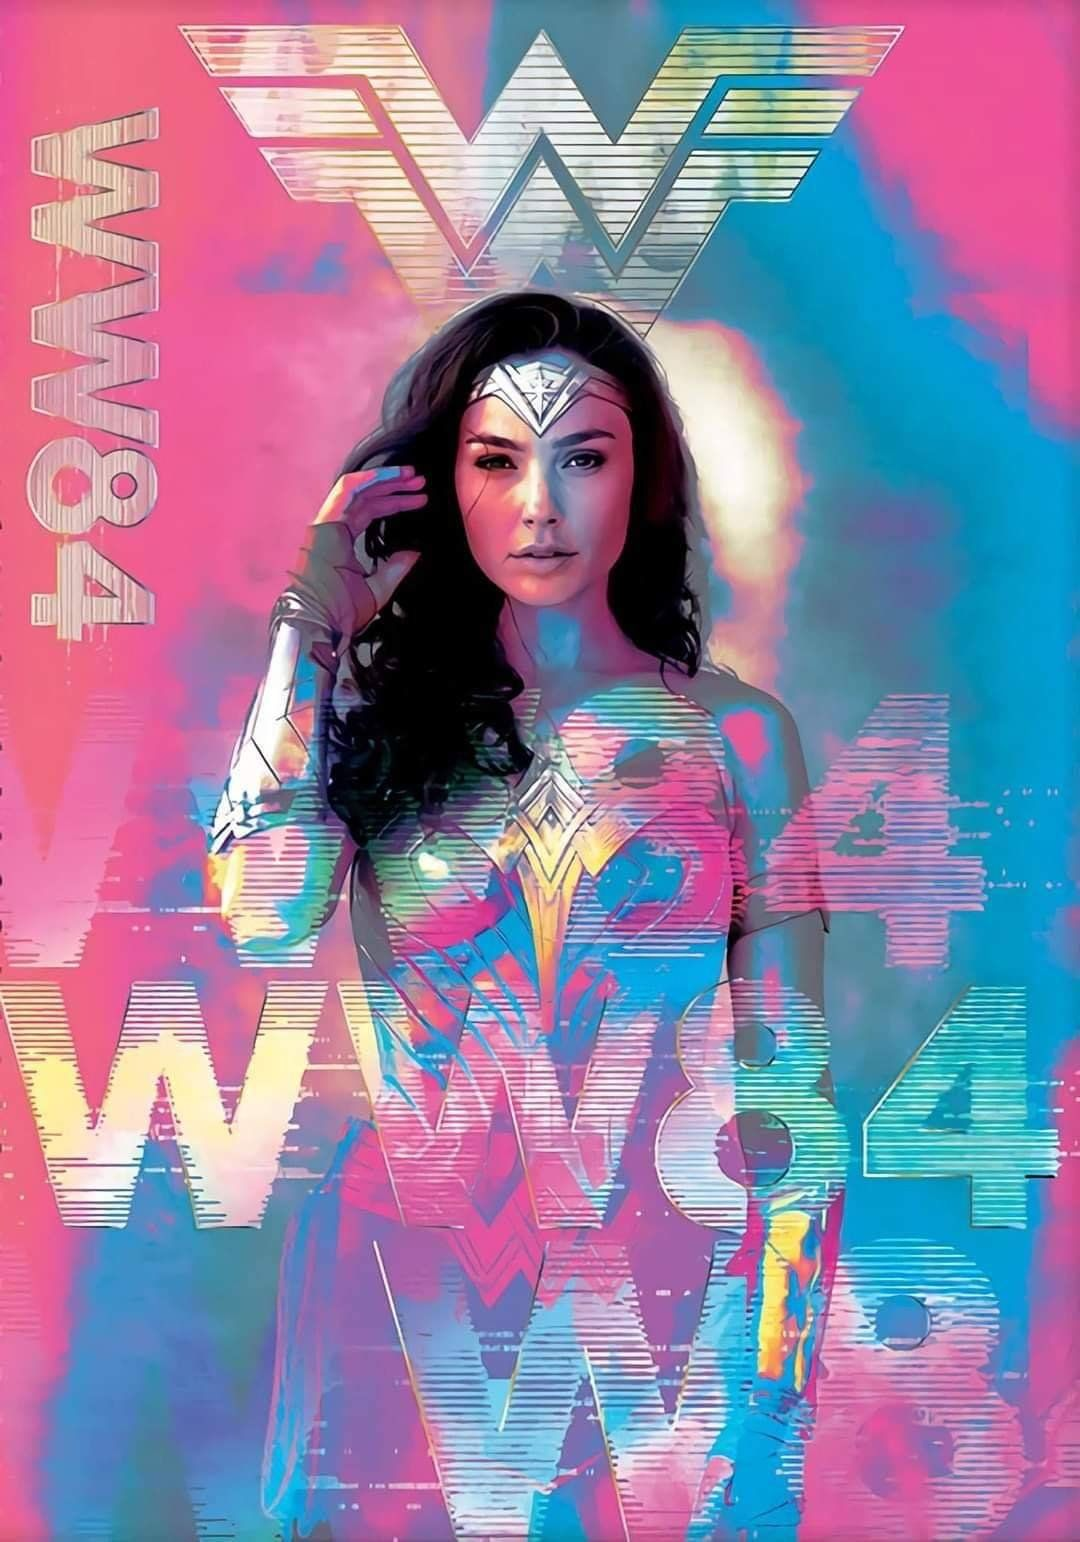 More Wonder Woman 1984 Posters The Fanboy Seo Wonder Woman Art Wonder Woman Drawing Wonder Woman Movie